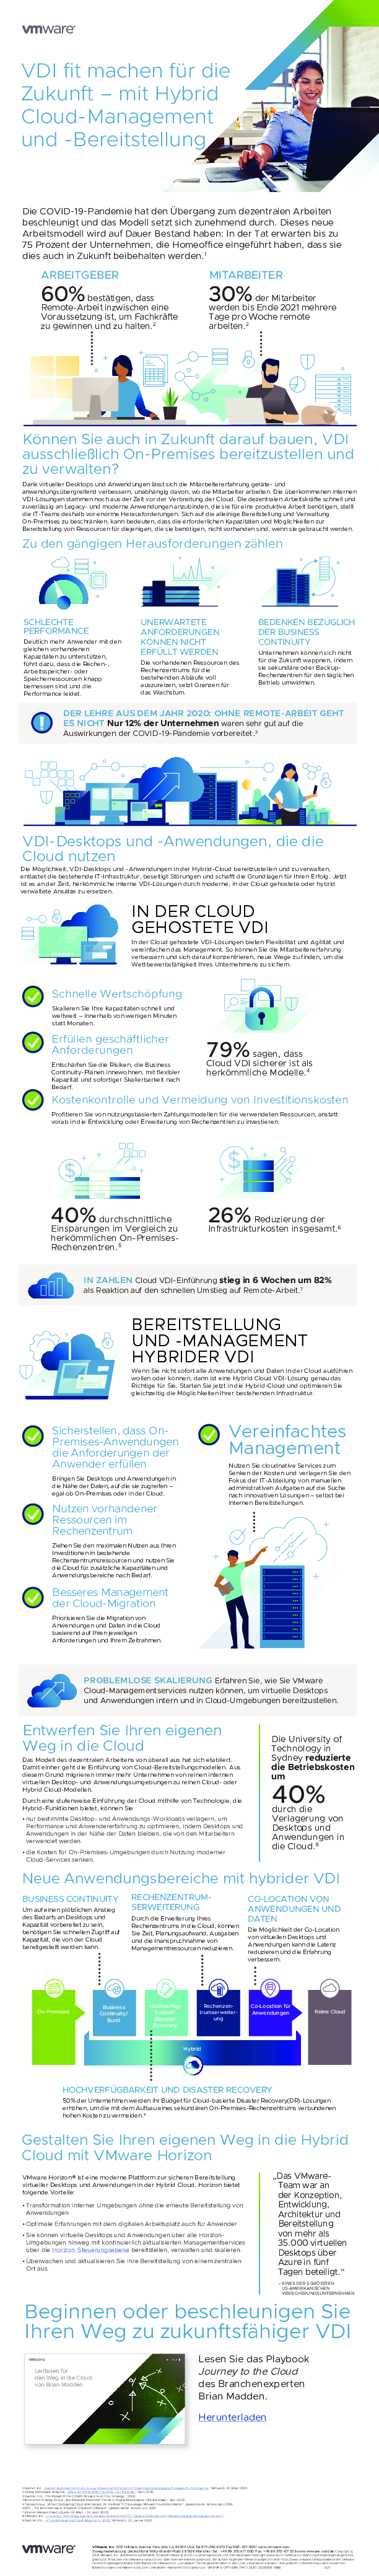 Cropped thumb original optimize vdi for the future with hybrid cloud management and deployment de f7e6ec10fed1b83d